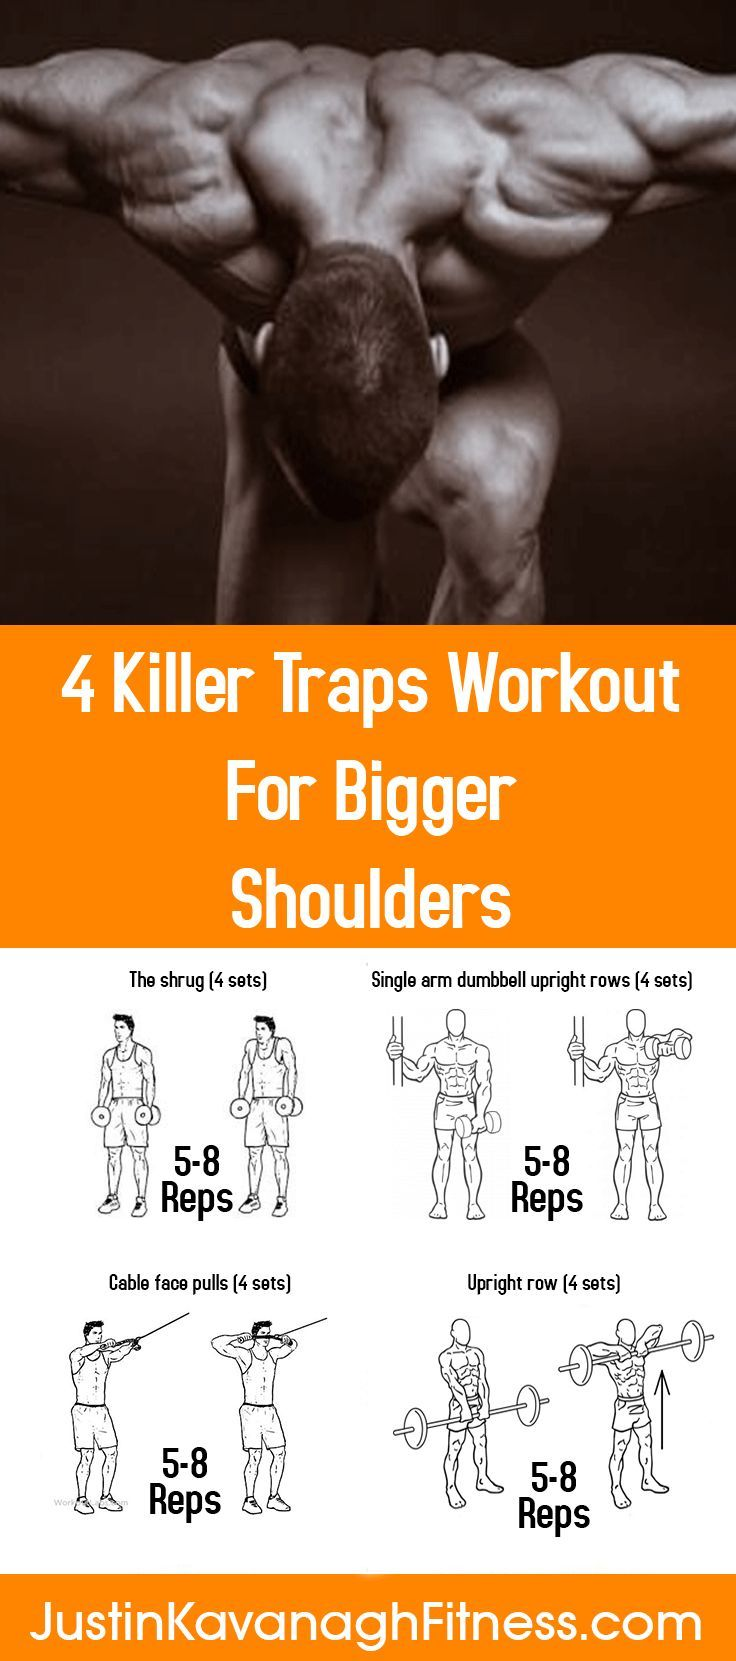 4 Killer Traps Workout - Tap the link to shop on our official online store! You can also join our affiliate and/or rewards programs for FREE!